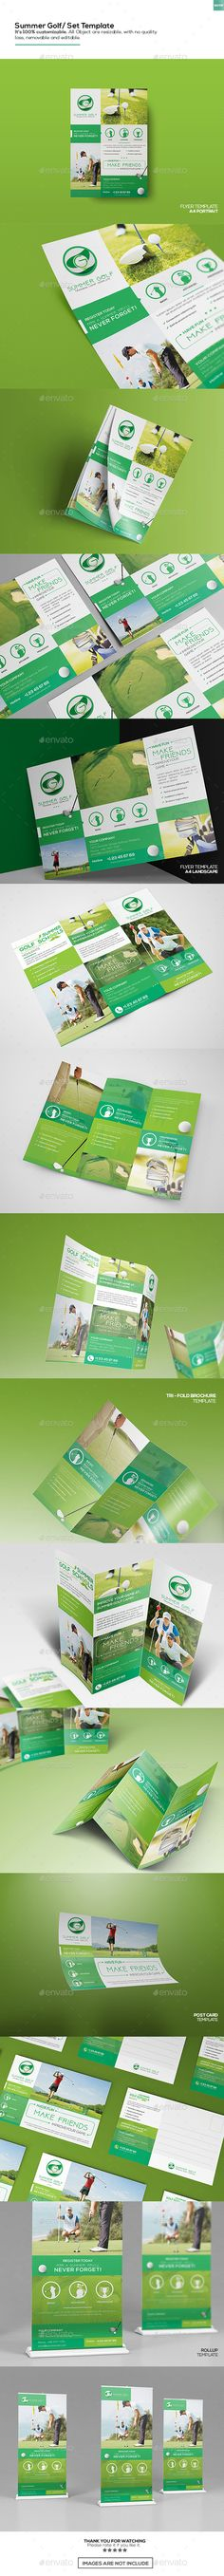 Golf Trifold Brochure Template PSD, Vector EPS, InDesign INDD, AI